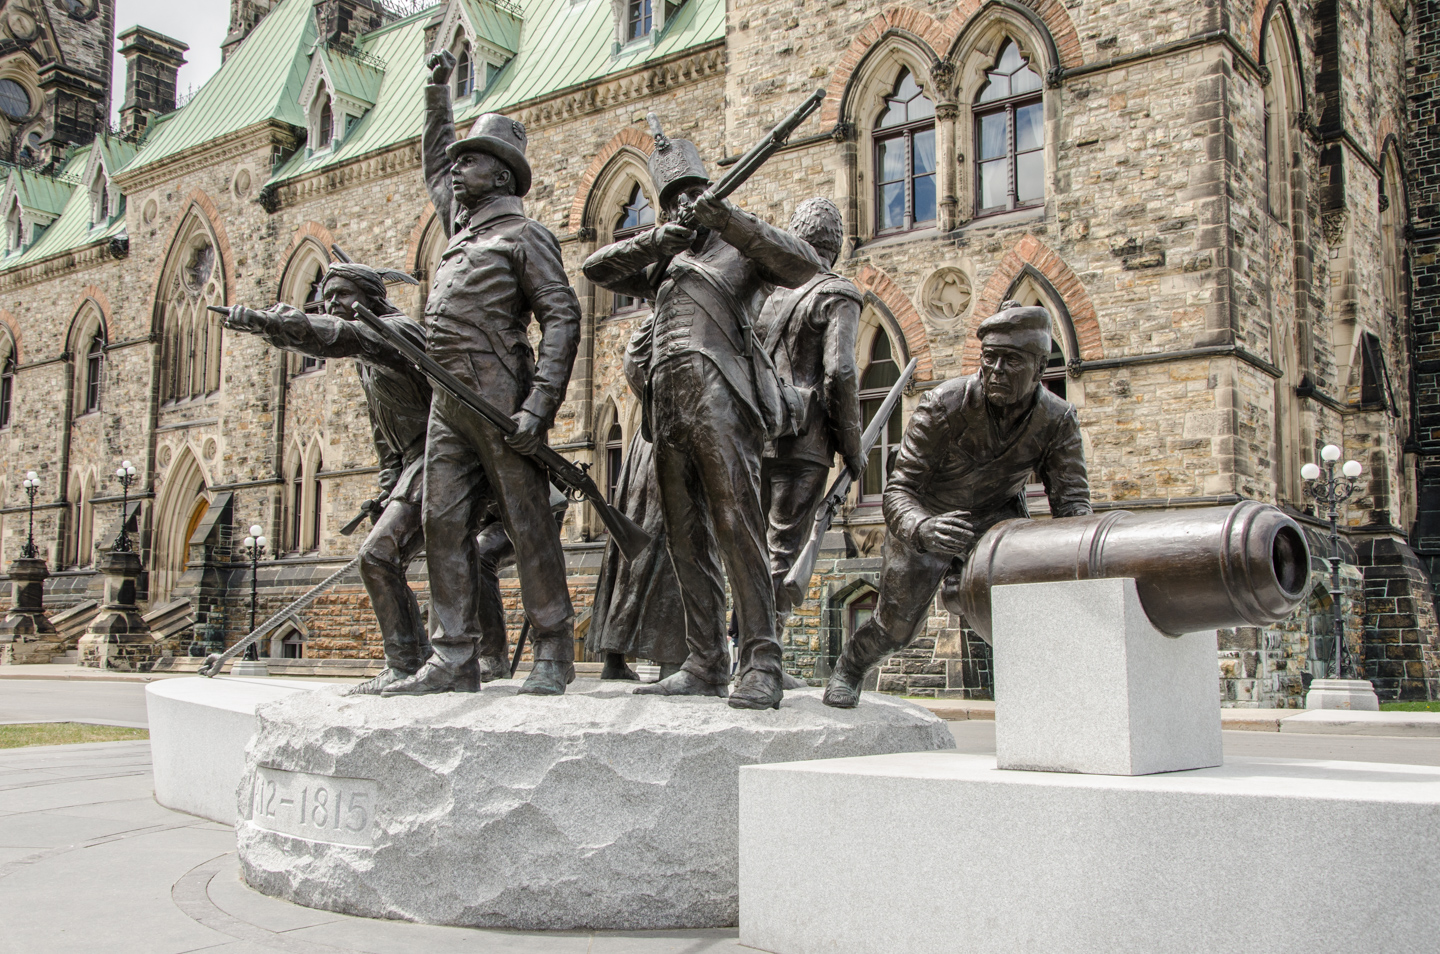 Explore The Statues Monuments And Memorials Of The Hill